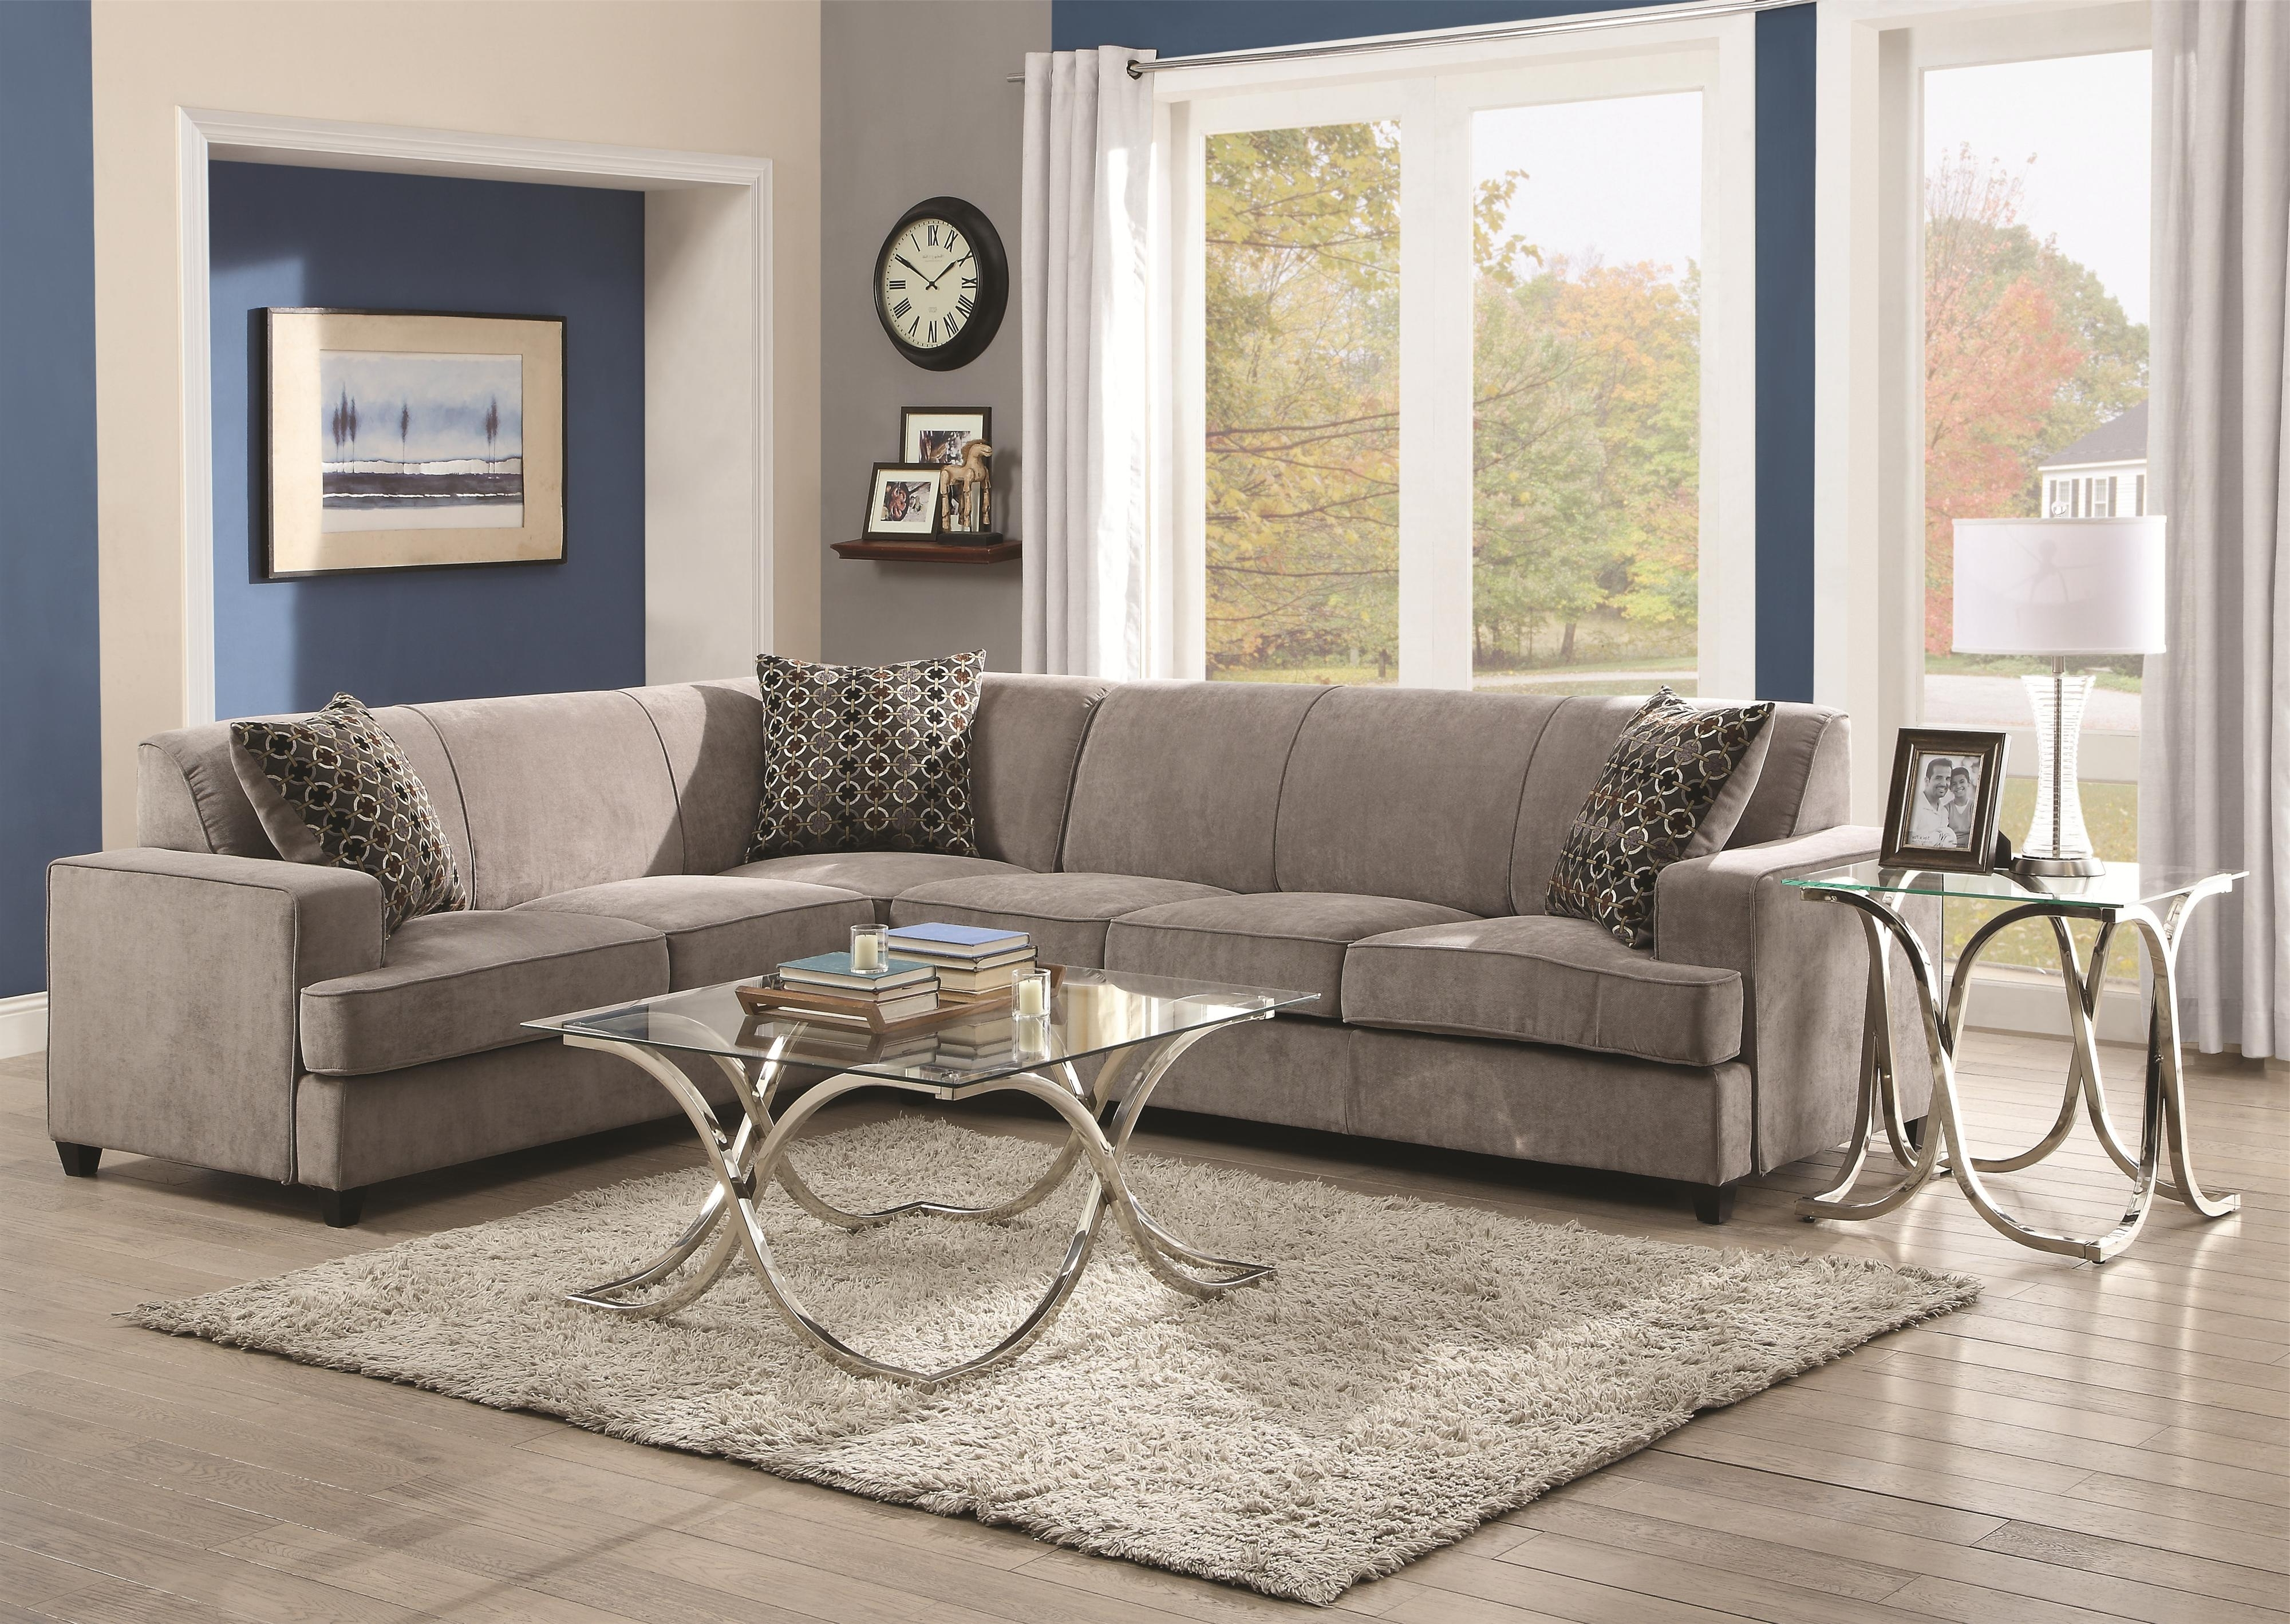 Value City Furniture With Regard To East Bay Sectional Sofas (Gallery 16 of 20)